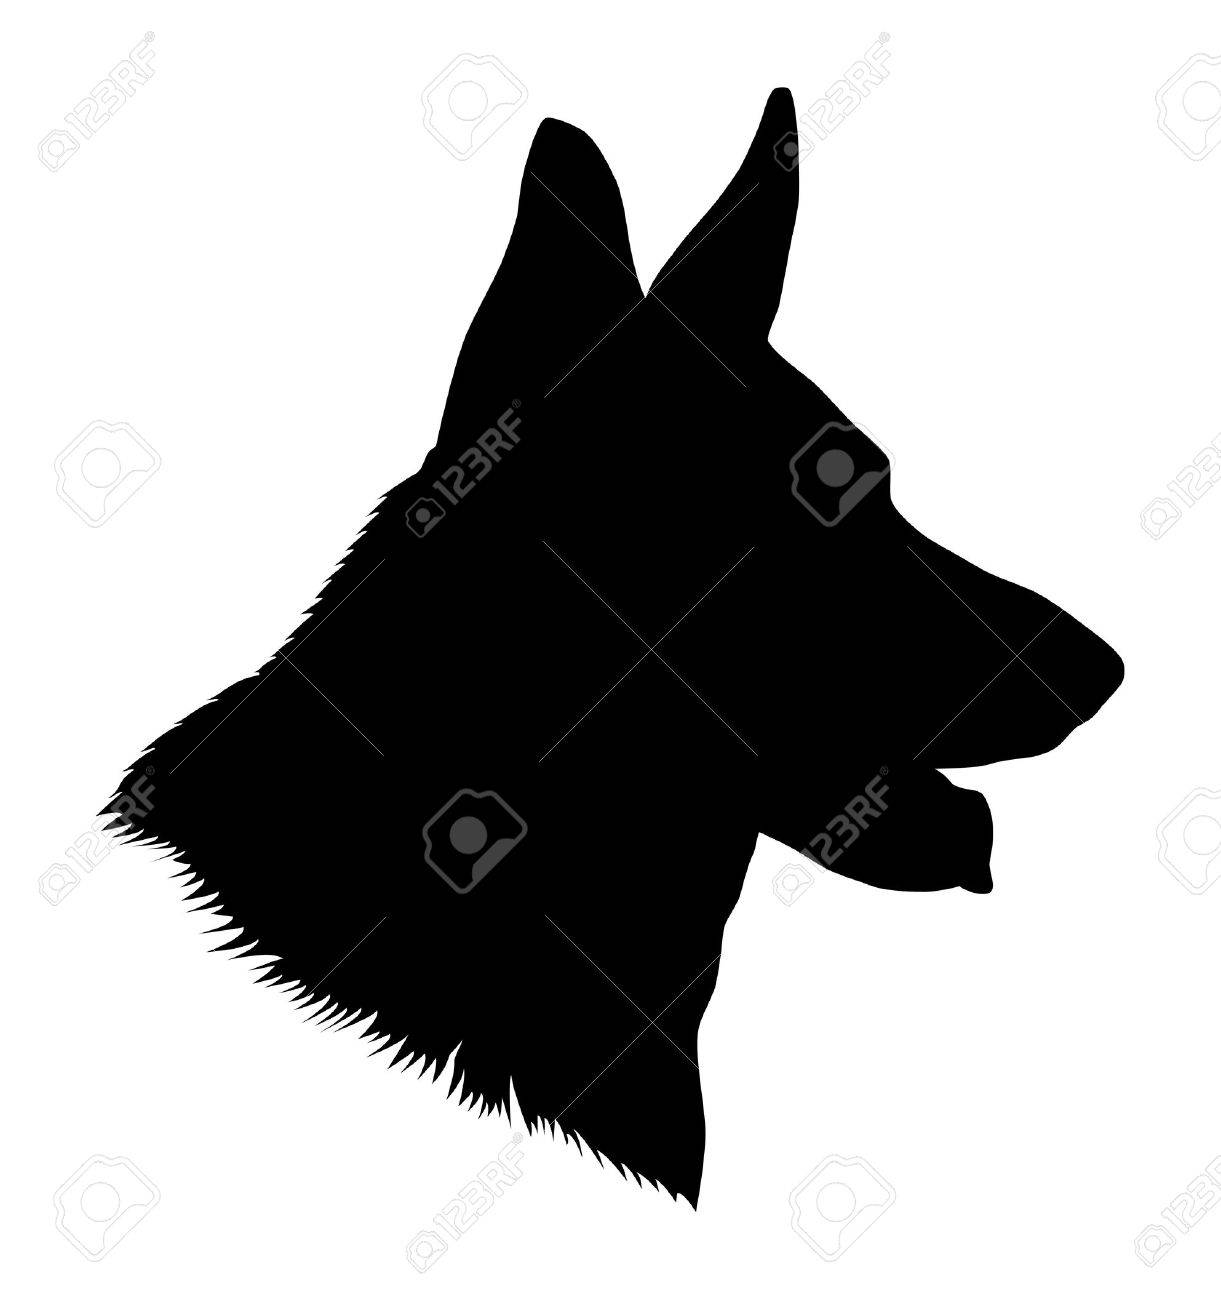 German Shepherd Dog Head Black And White Illustration Royalty Free